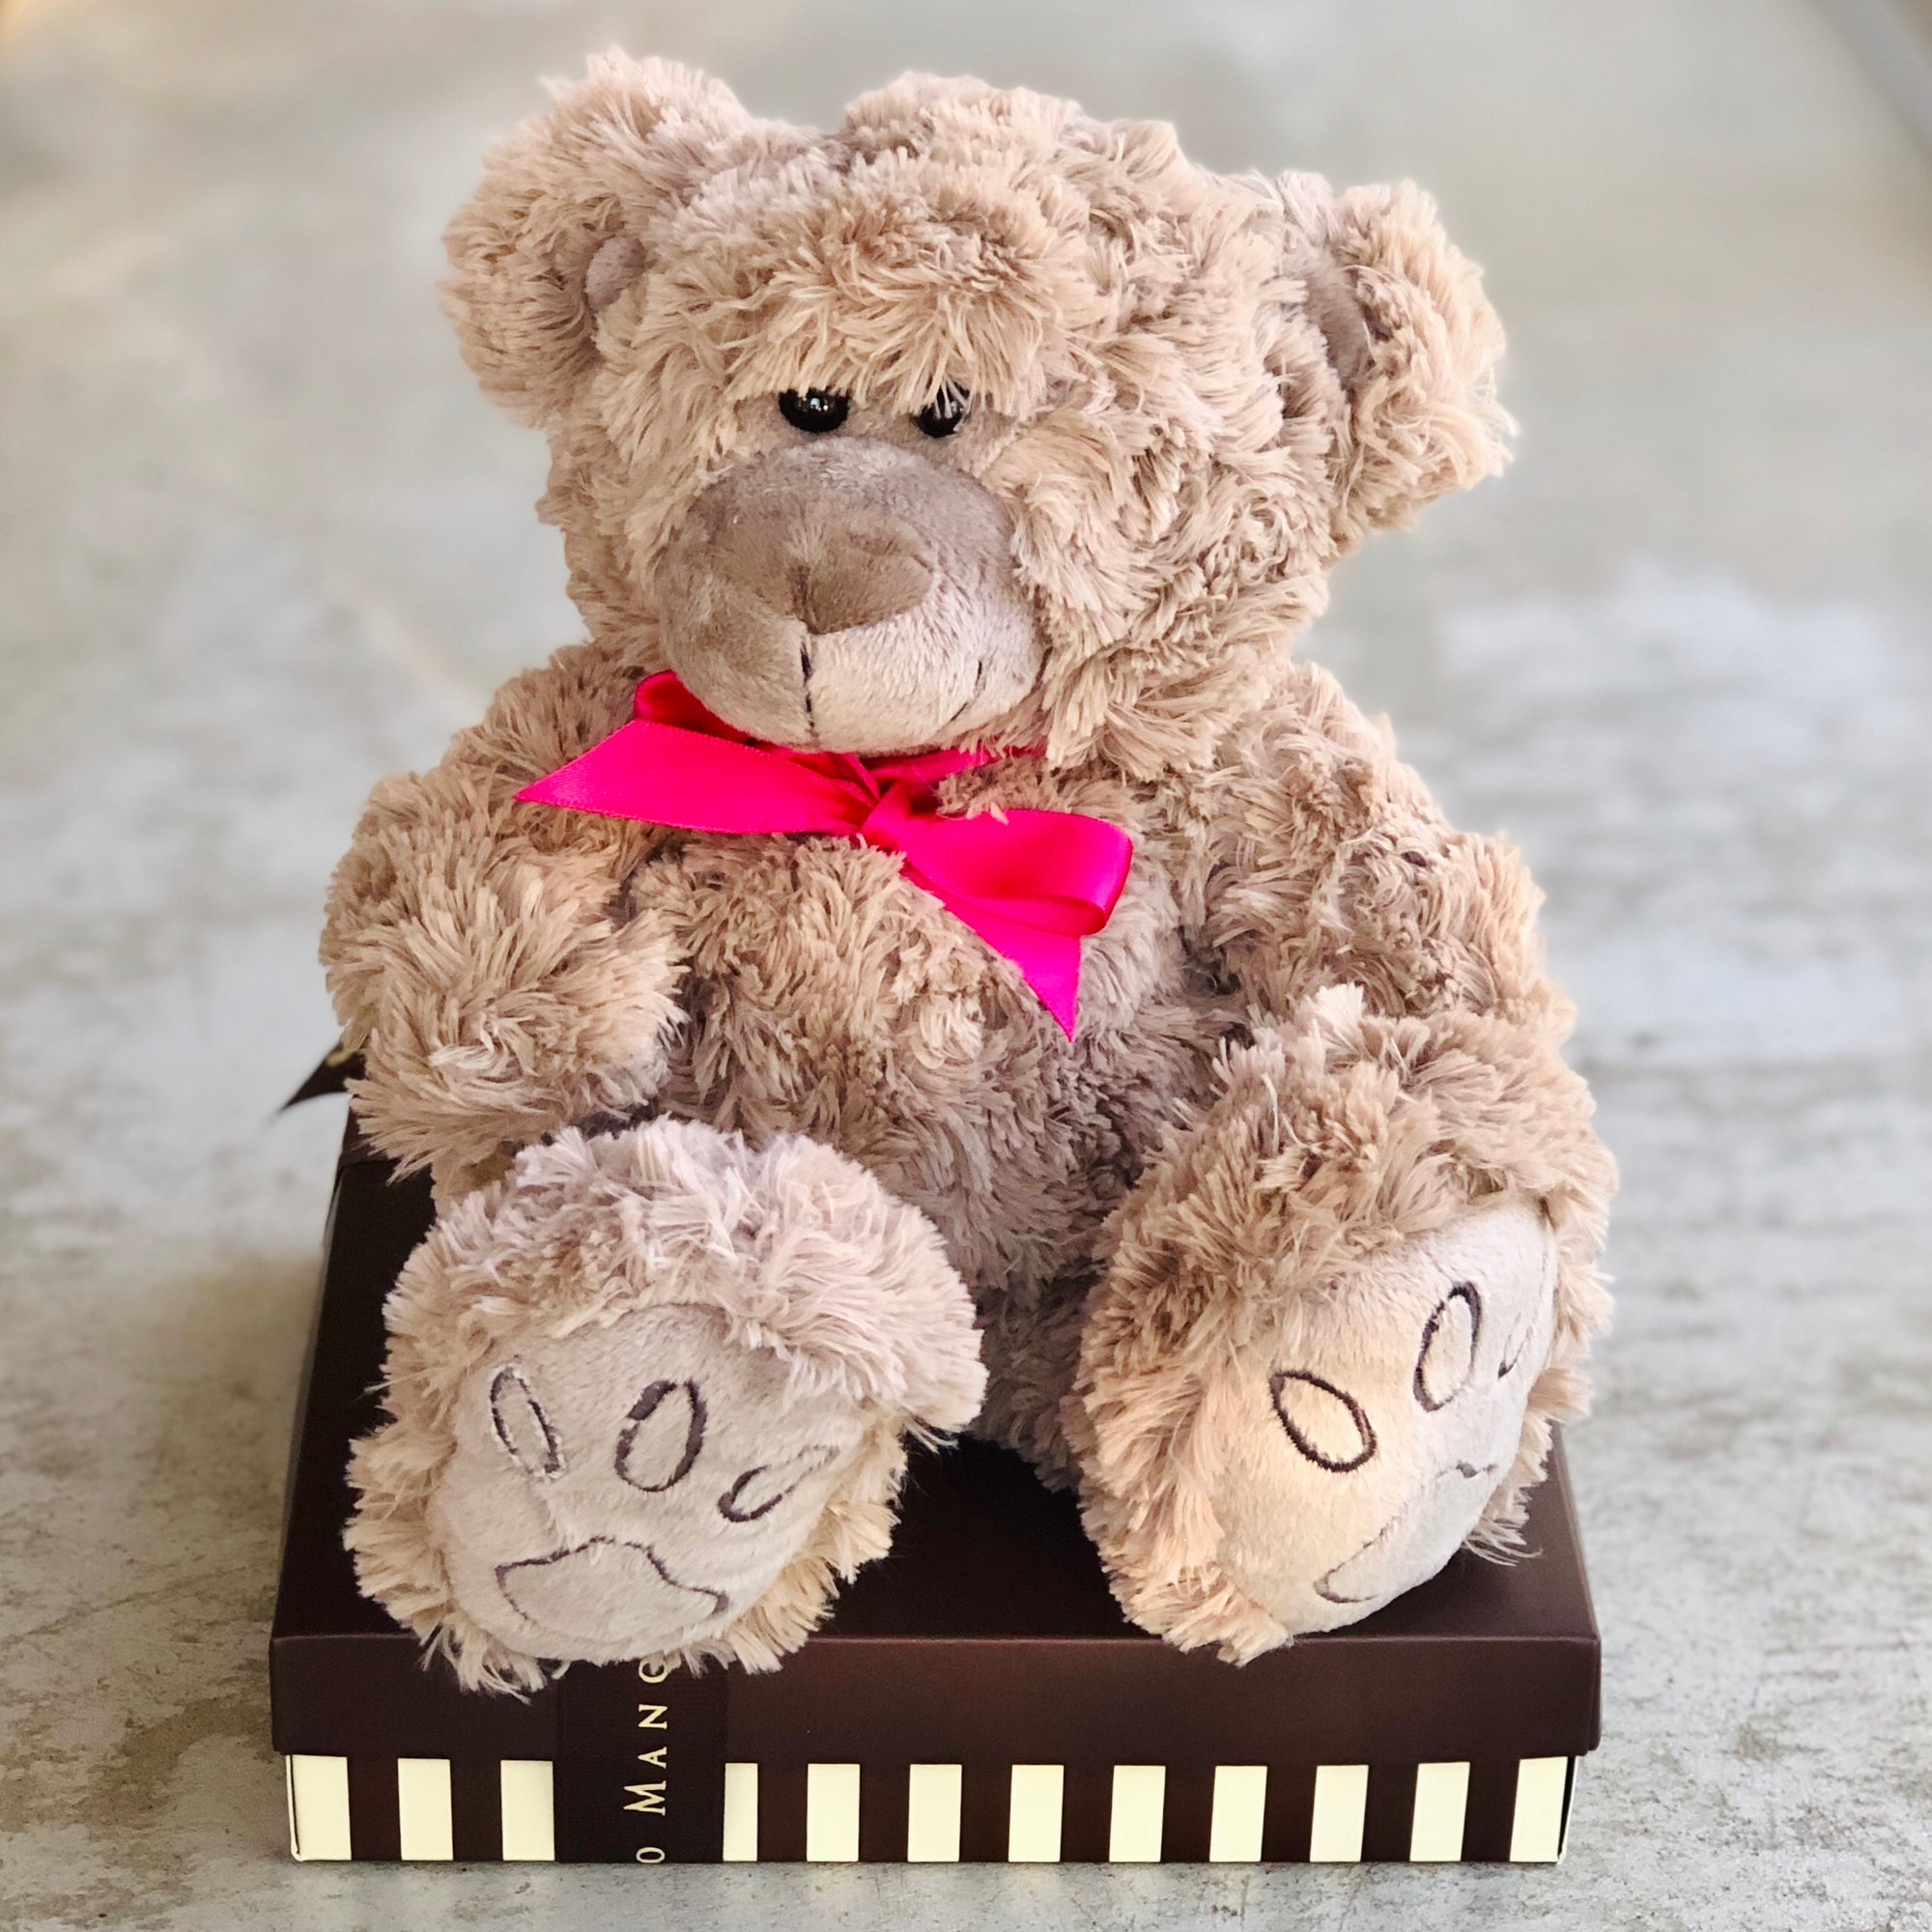 A baby arrival gift delivery of a cuddly teddy bear with pink ribbon on top of Brownie box